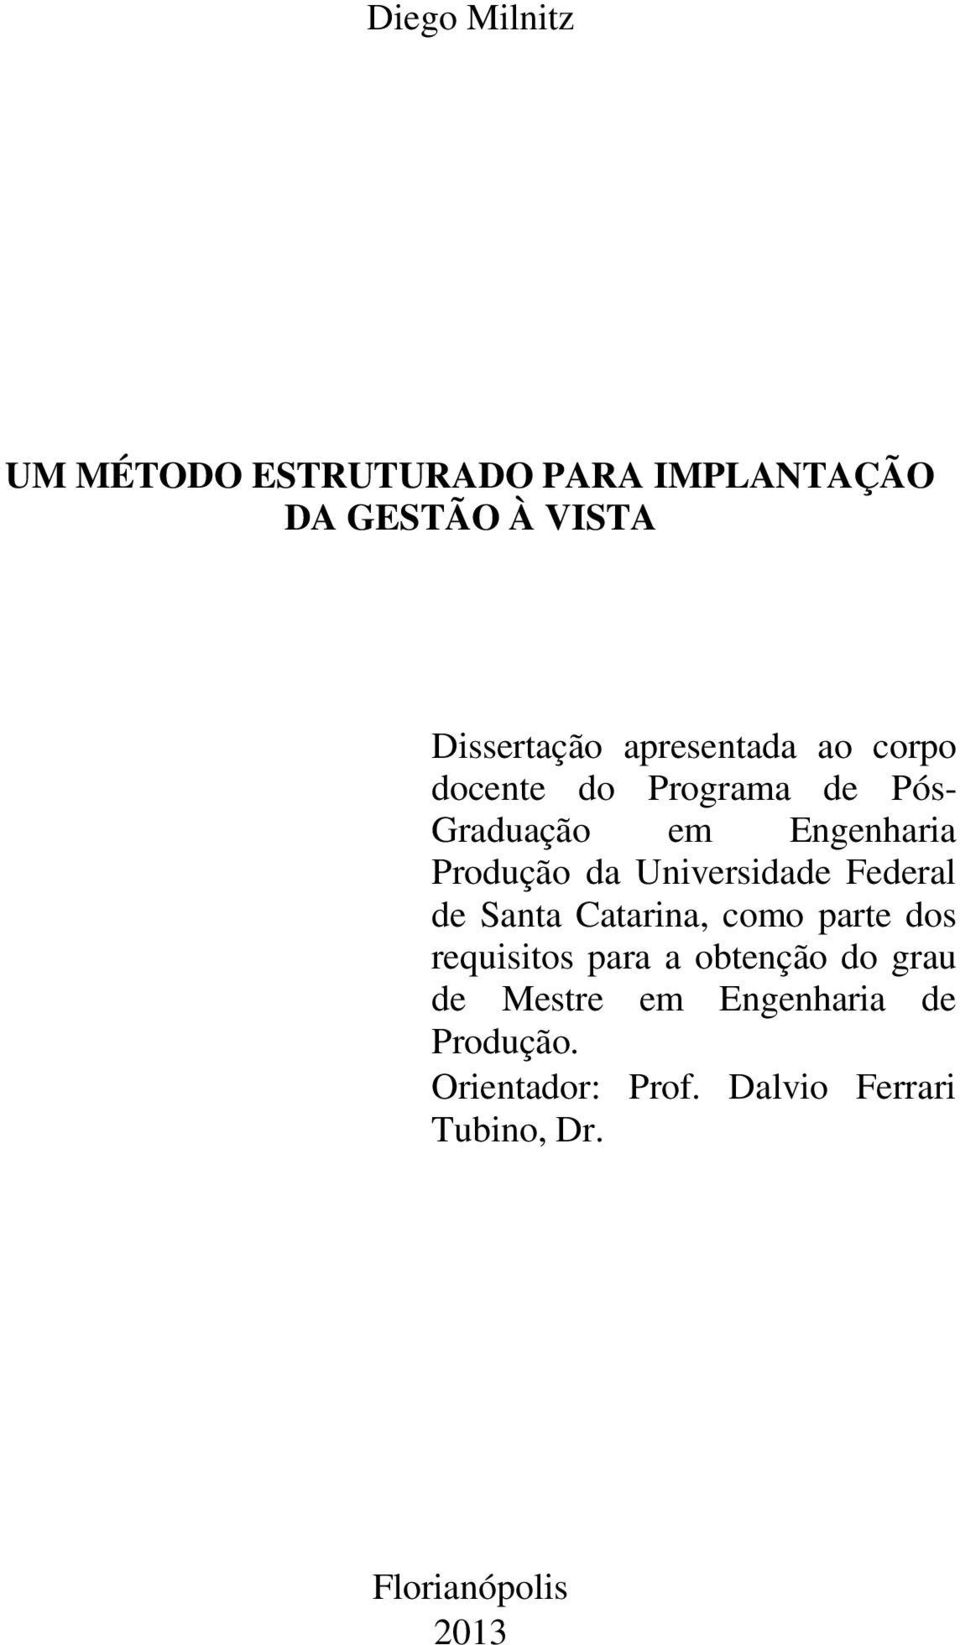 Universidade Federal de Santa Catarina, como parte dos requisitos para a obtenção do grau